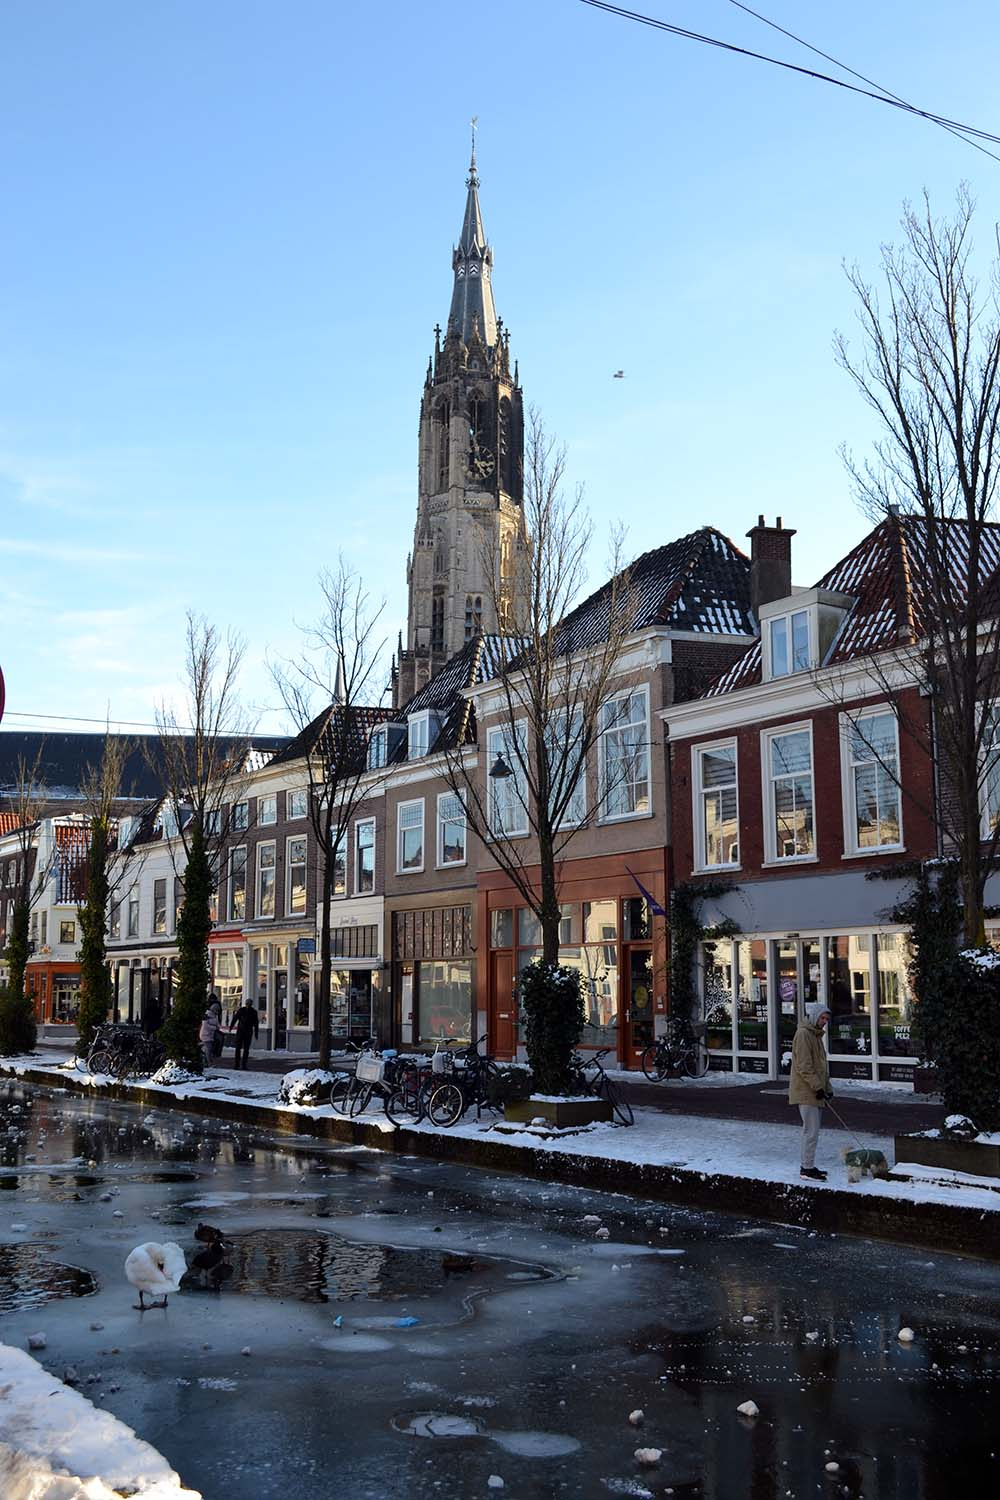 Travel Diary: Ein Wintertag in Delft | Niederlande - winter delft 3